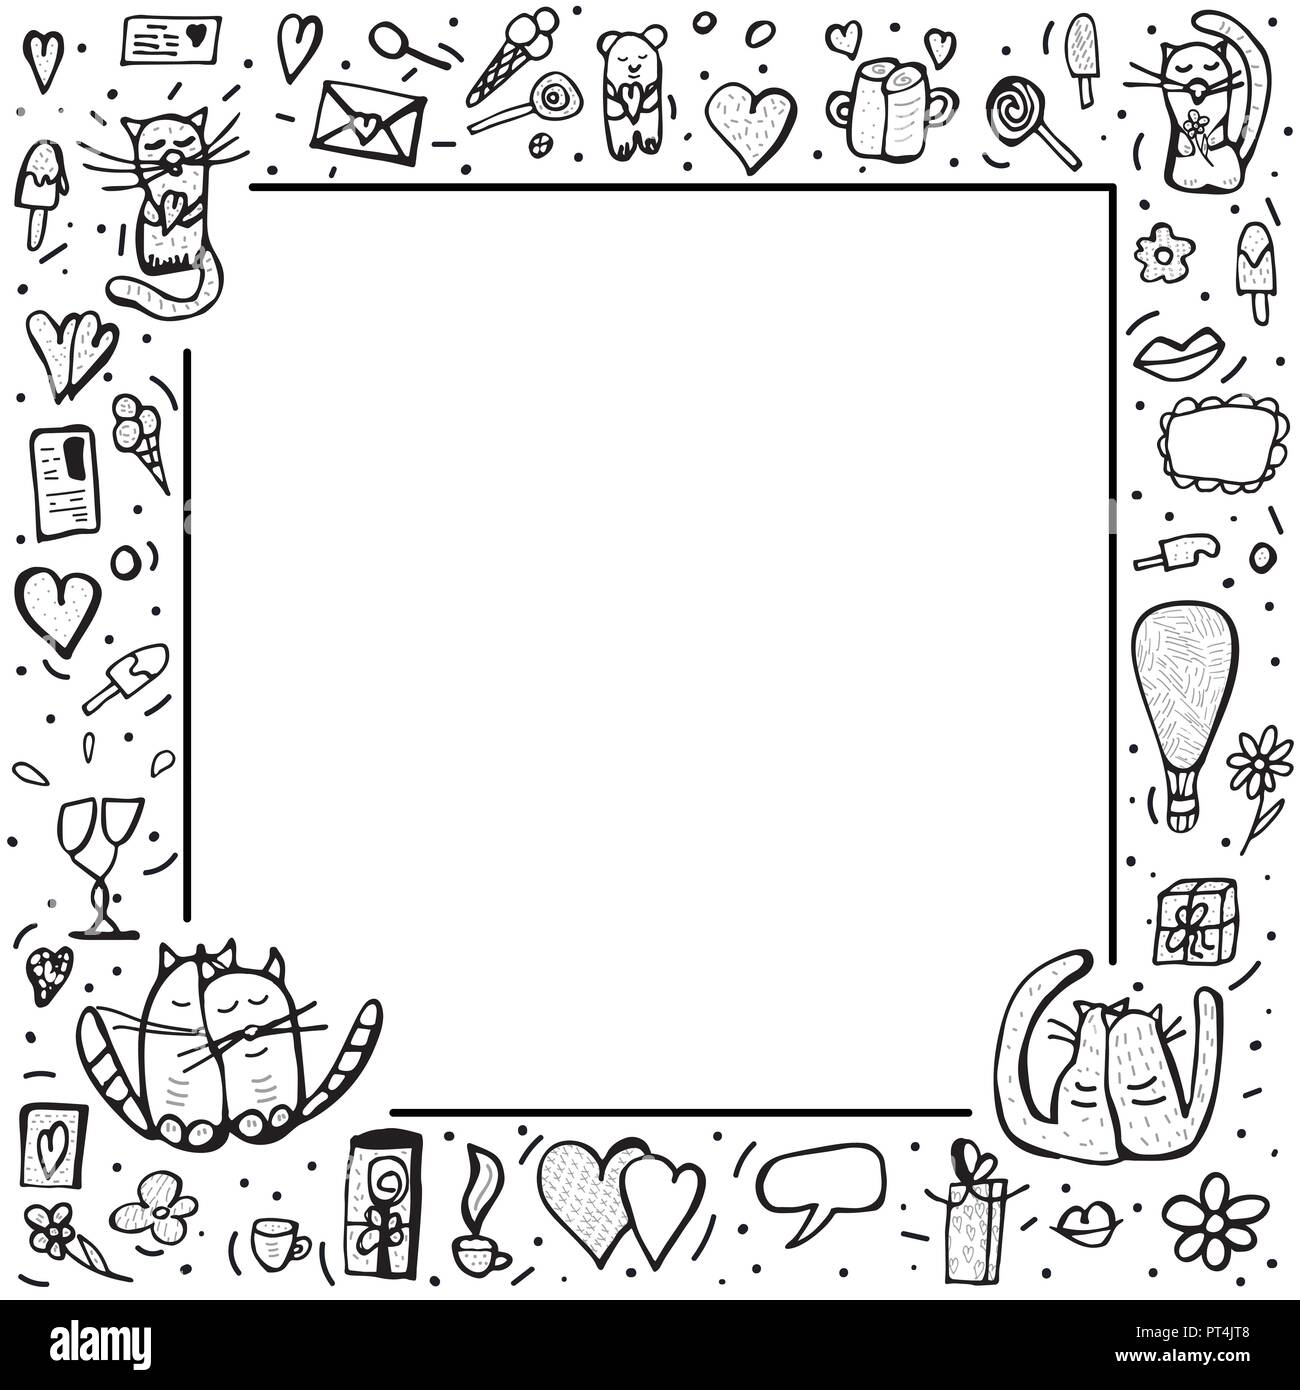 Square Frame With Cute Love Symbols In Doodle Style Cats